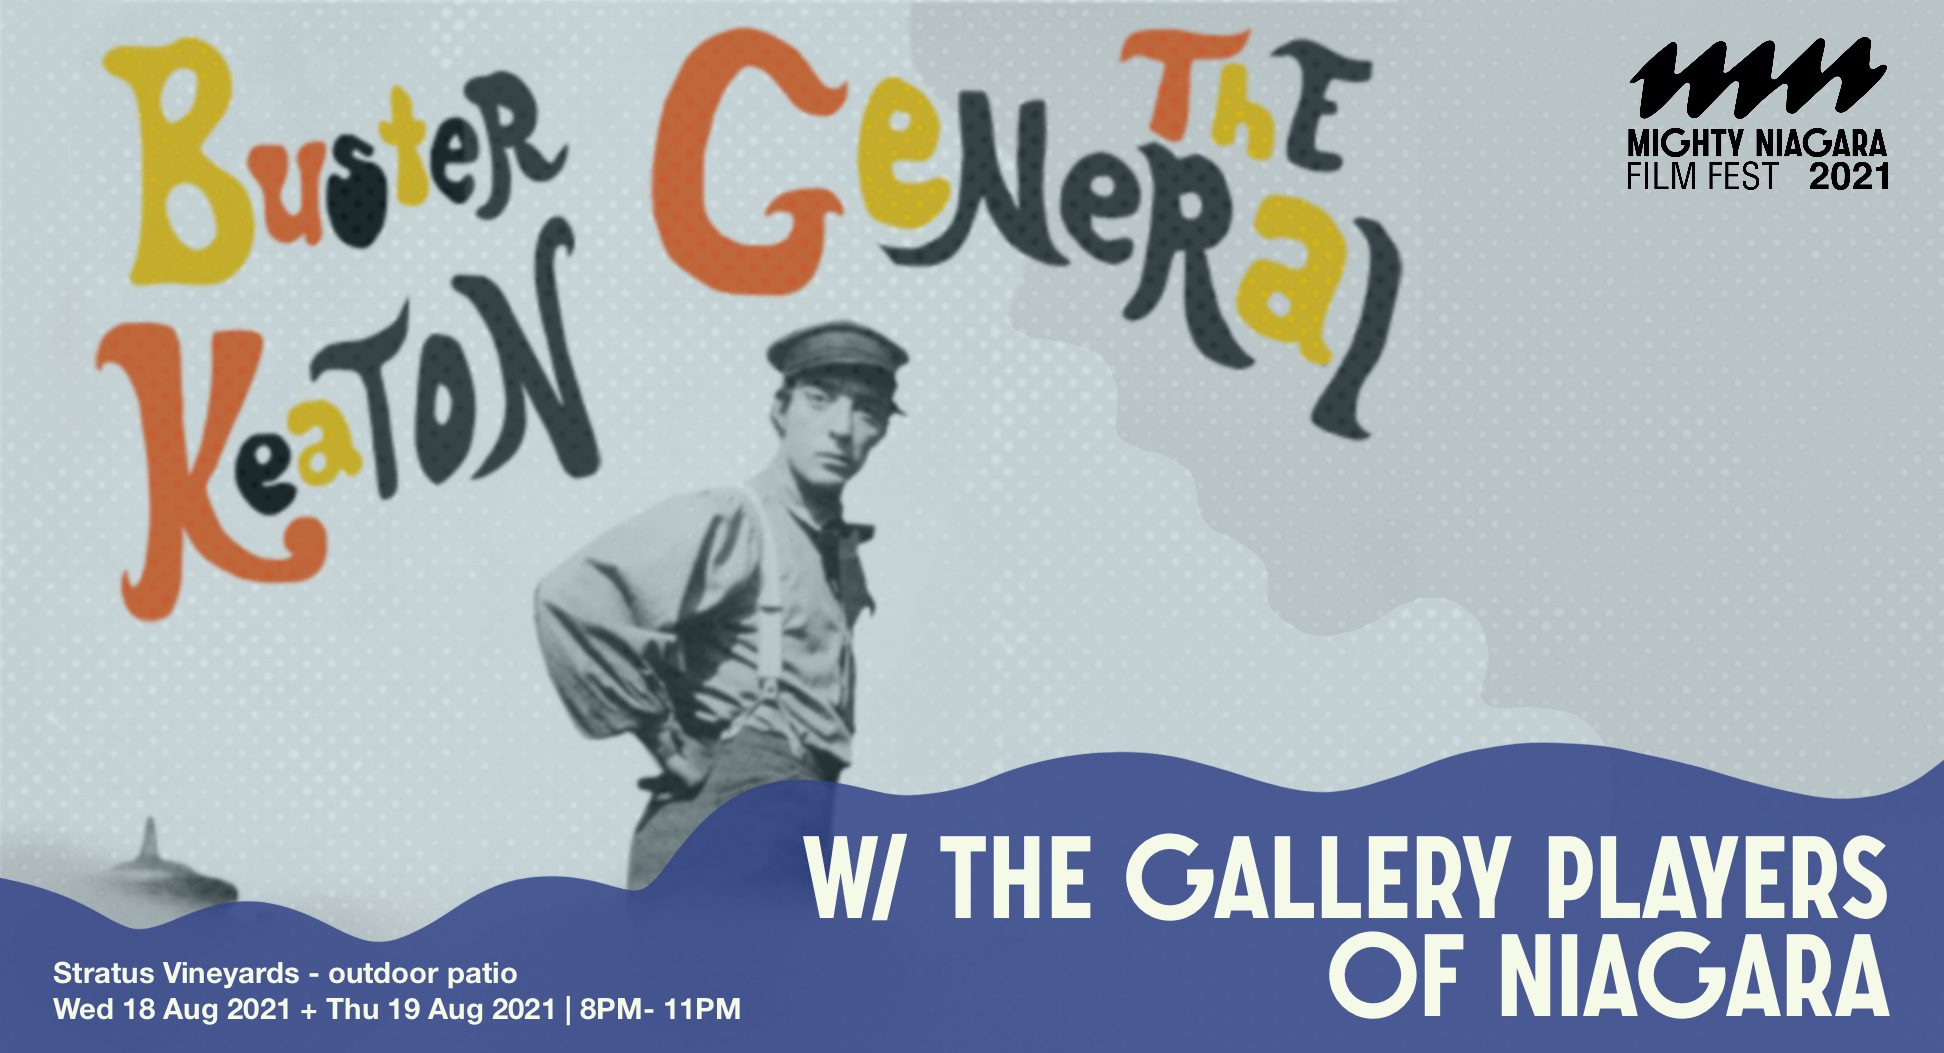 The General with Gallery Players